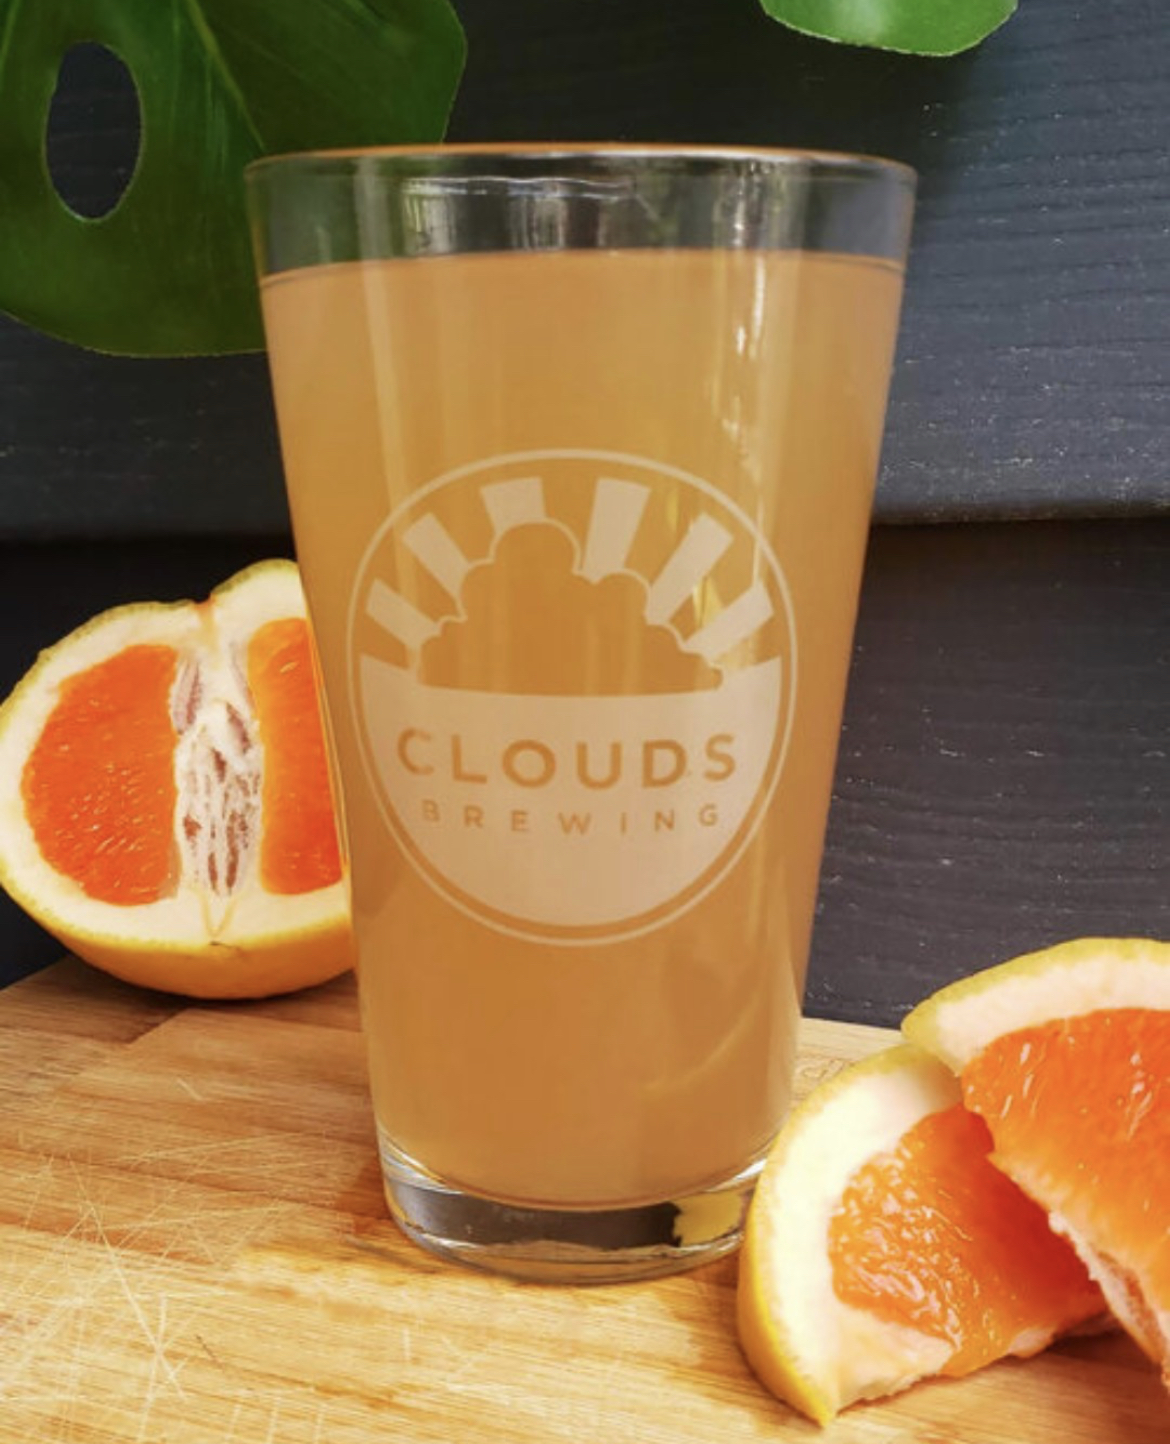 Clouds brewing beer shot with oranges